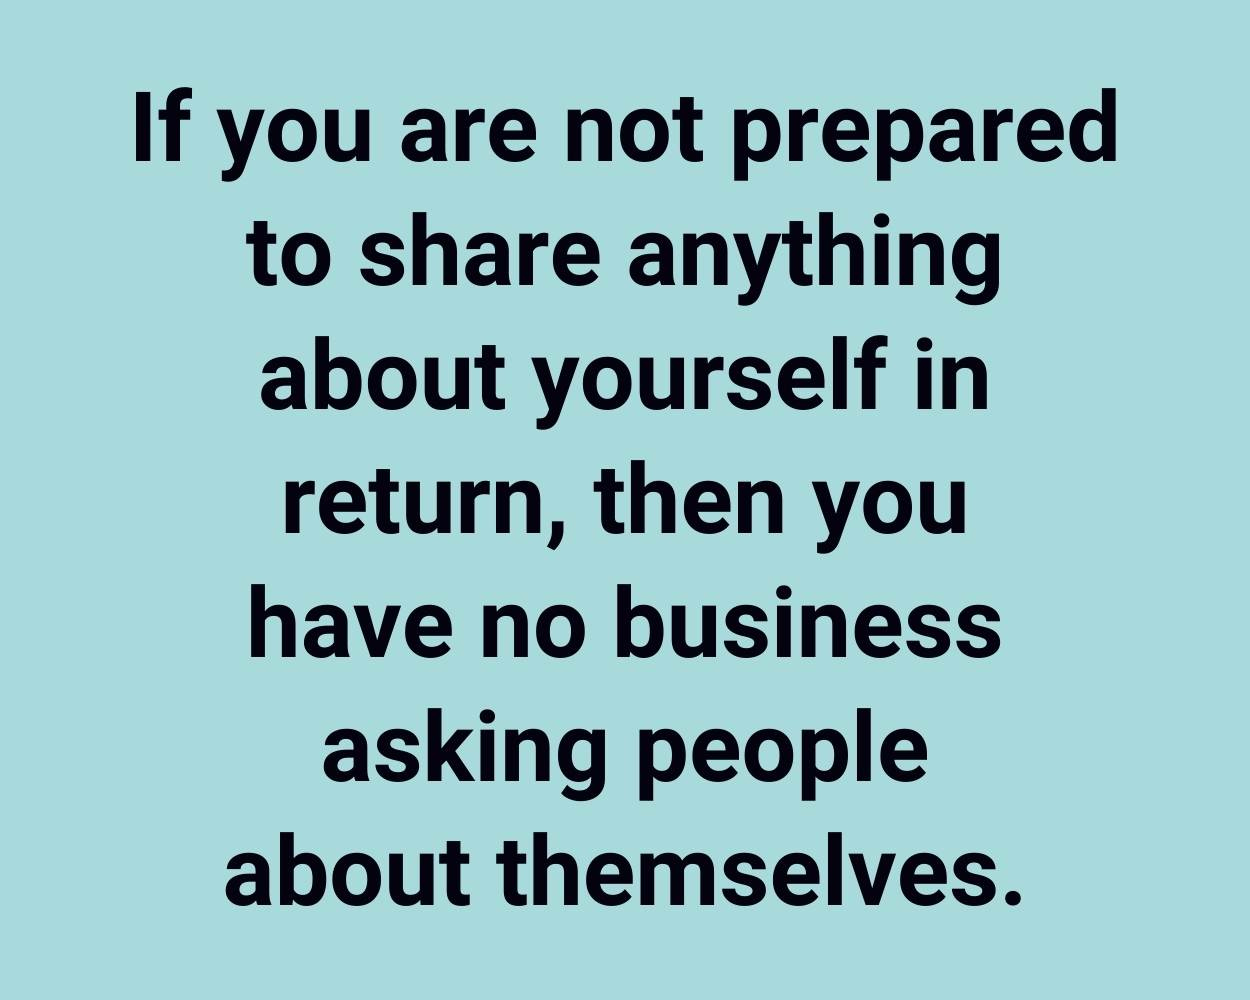 If you are not prepared to share anything about yourself in return, then you have no business asking people about themselves.